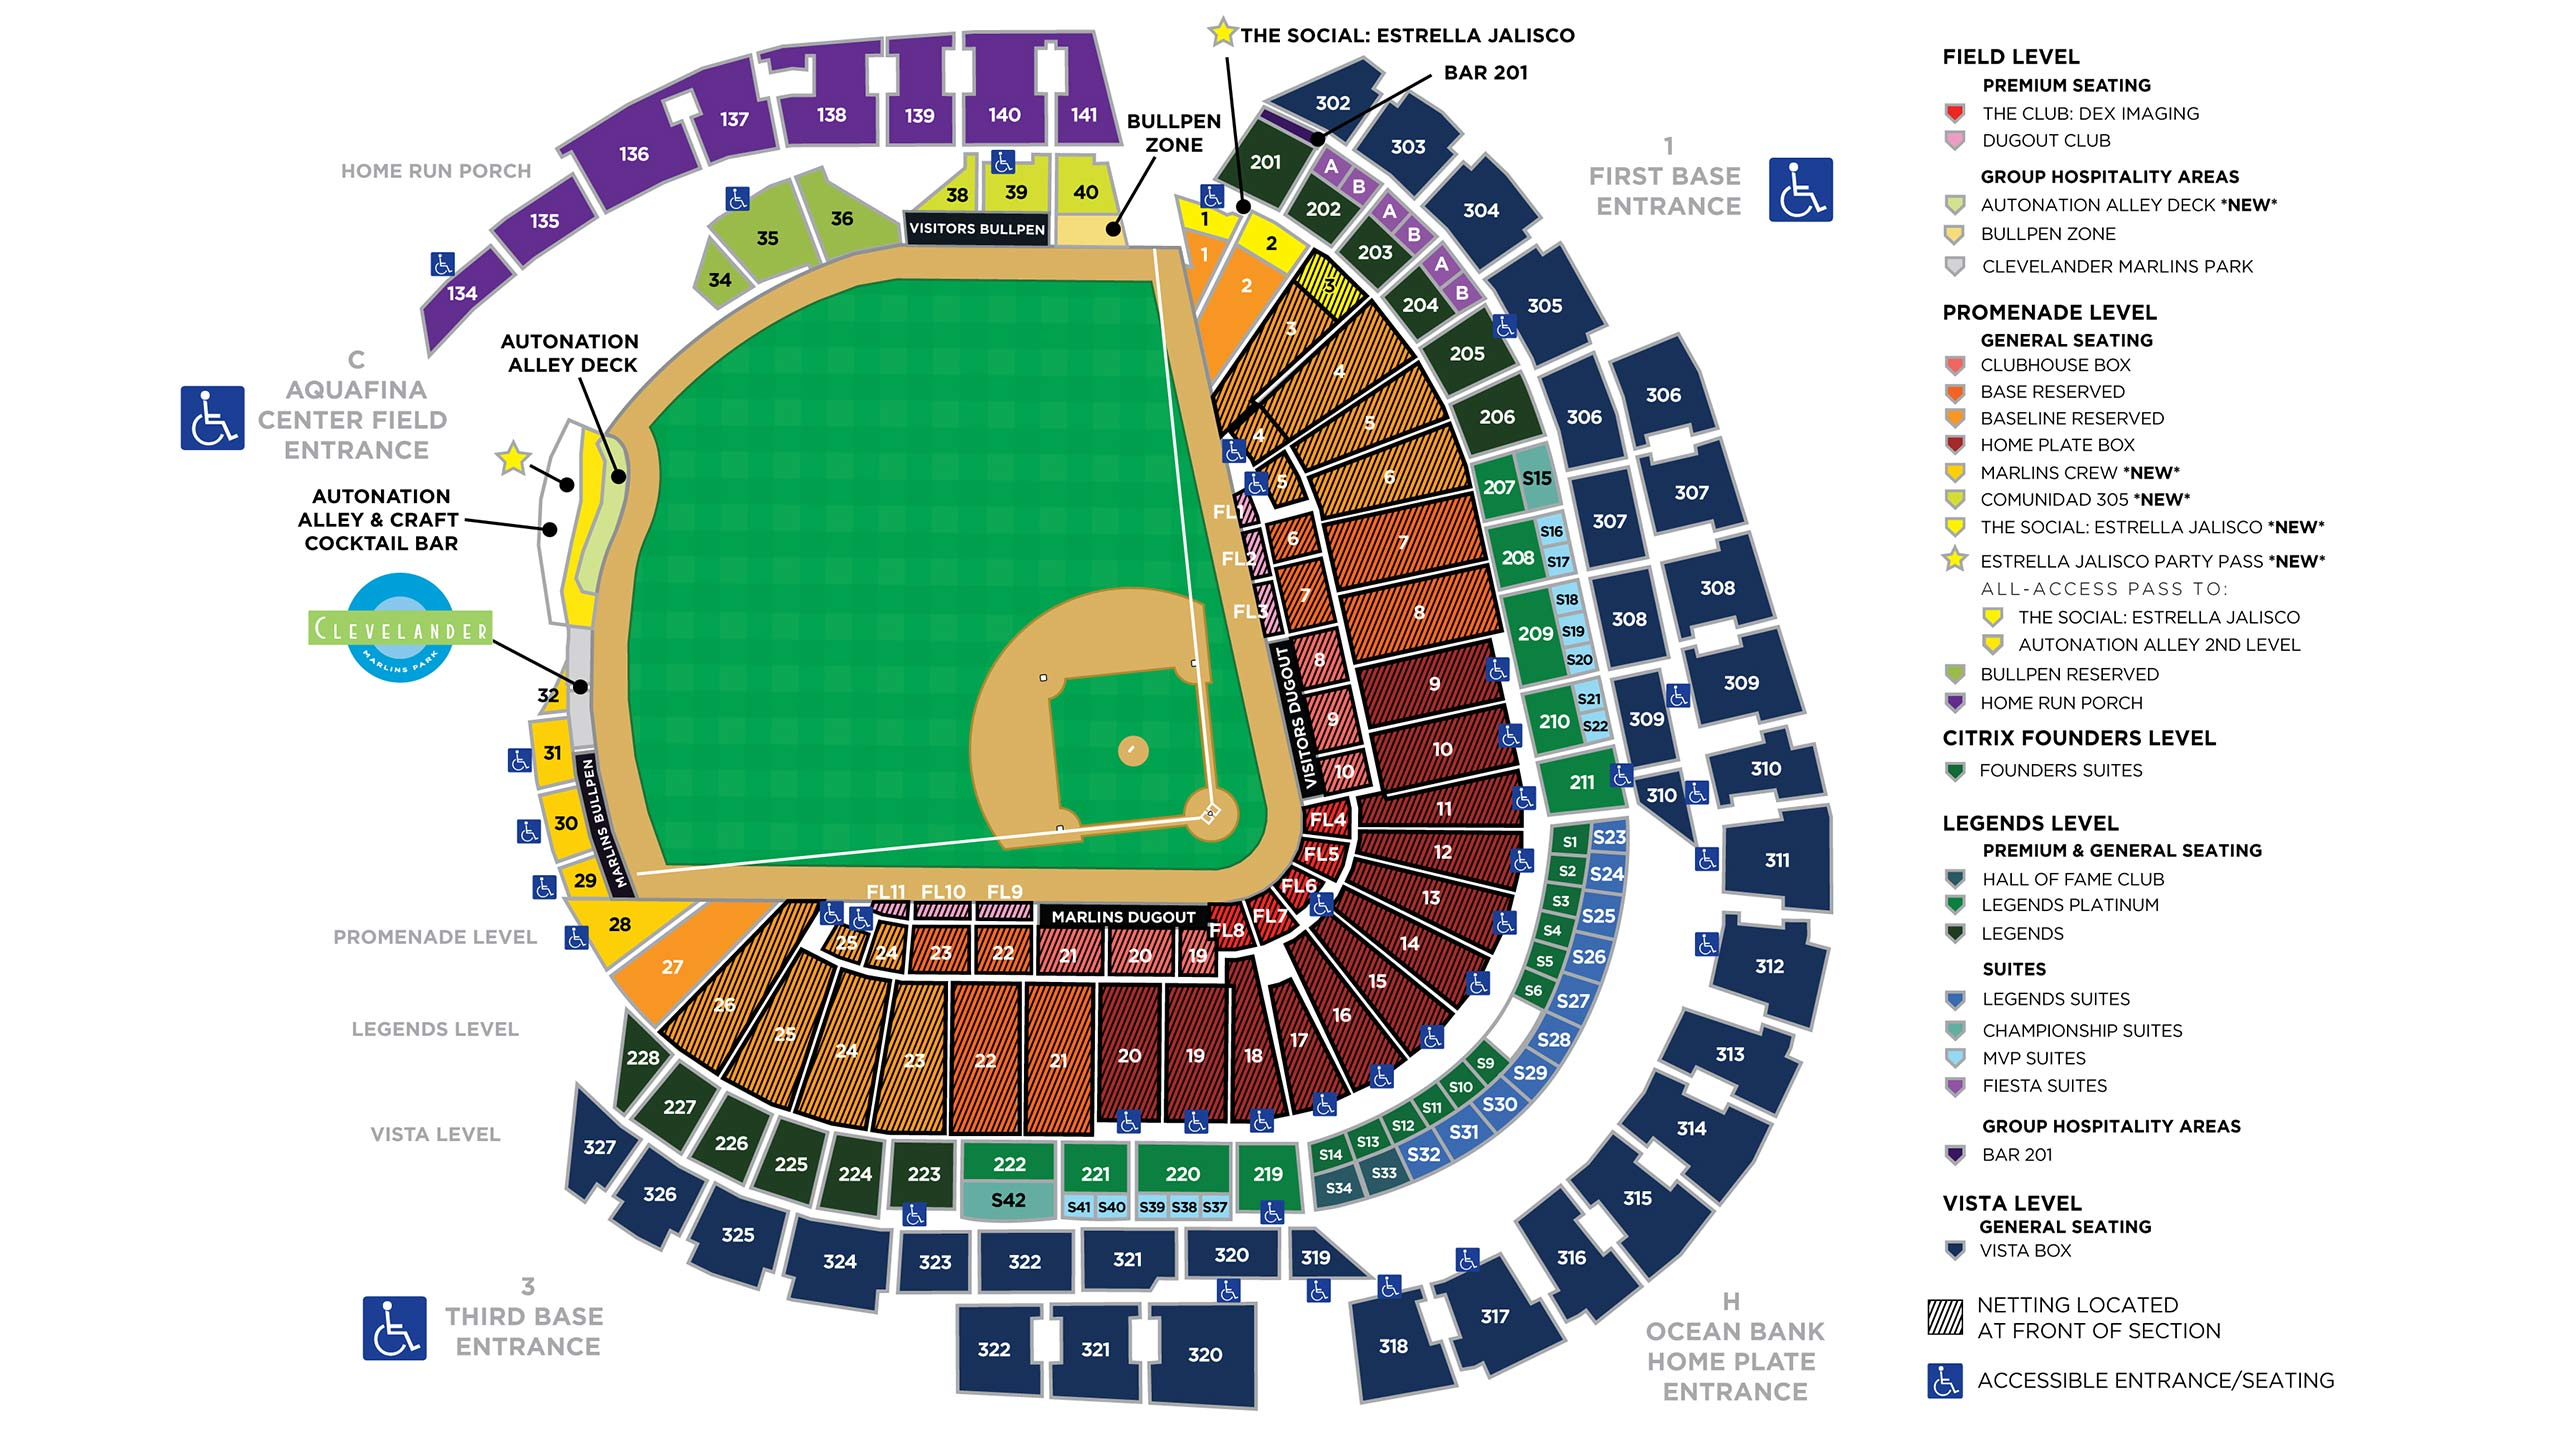 Marlins Park Seating Map | Miami Marlins on giants arena seating, giants jets stadium map, giants stadium seating numbers, giants stadium seating plan, giants stadium seating chart, giants stadium seating view, giants tailgating, giants stadium seating vip seats, giants parking map, giants merchandise, giants spring training tickets, giants at stadium view from my seat, giants schedule,